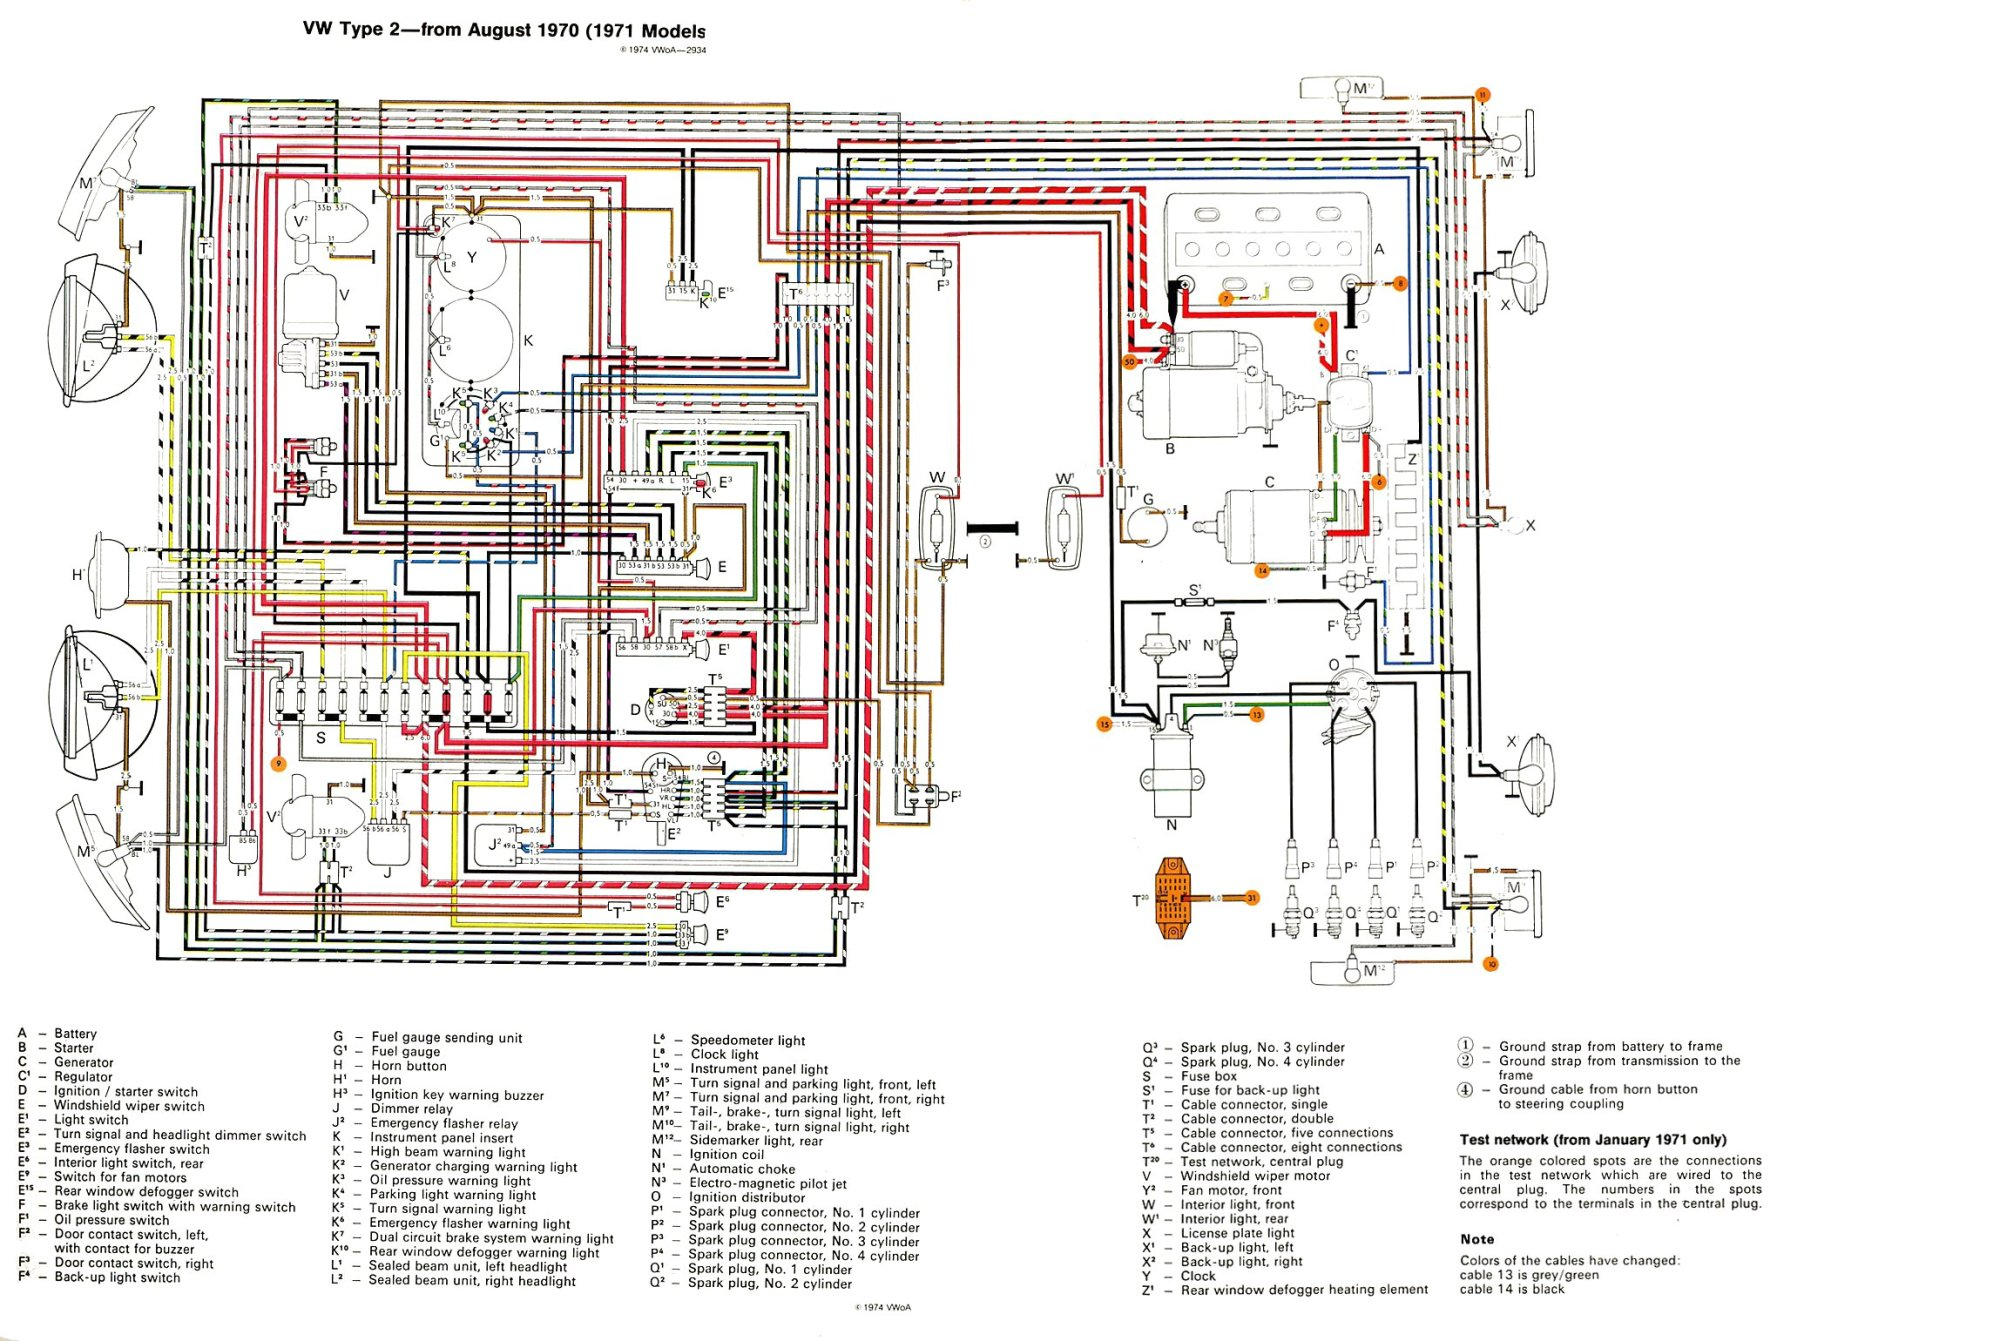 hight resolution of thesamba com type 2 wiring diagrams rh thesamba com 2012 vw passat fuse diagram 2012 vw